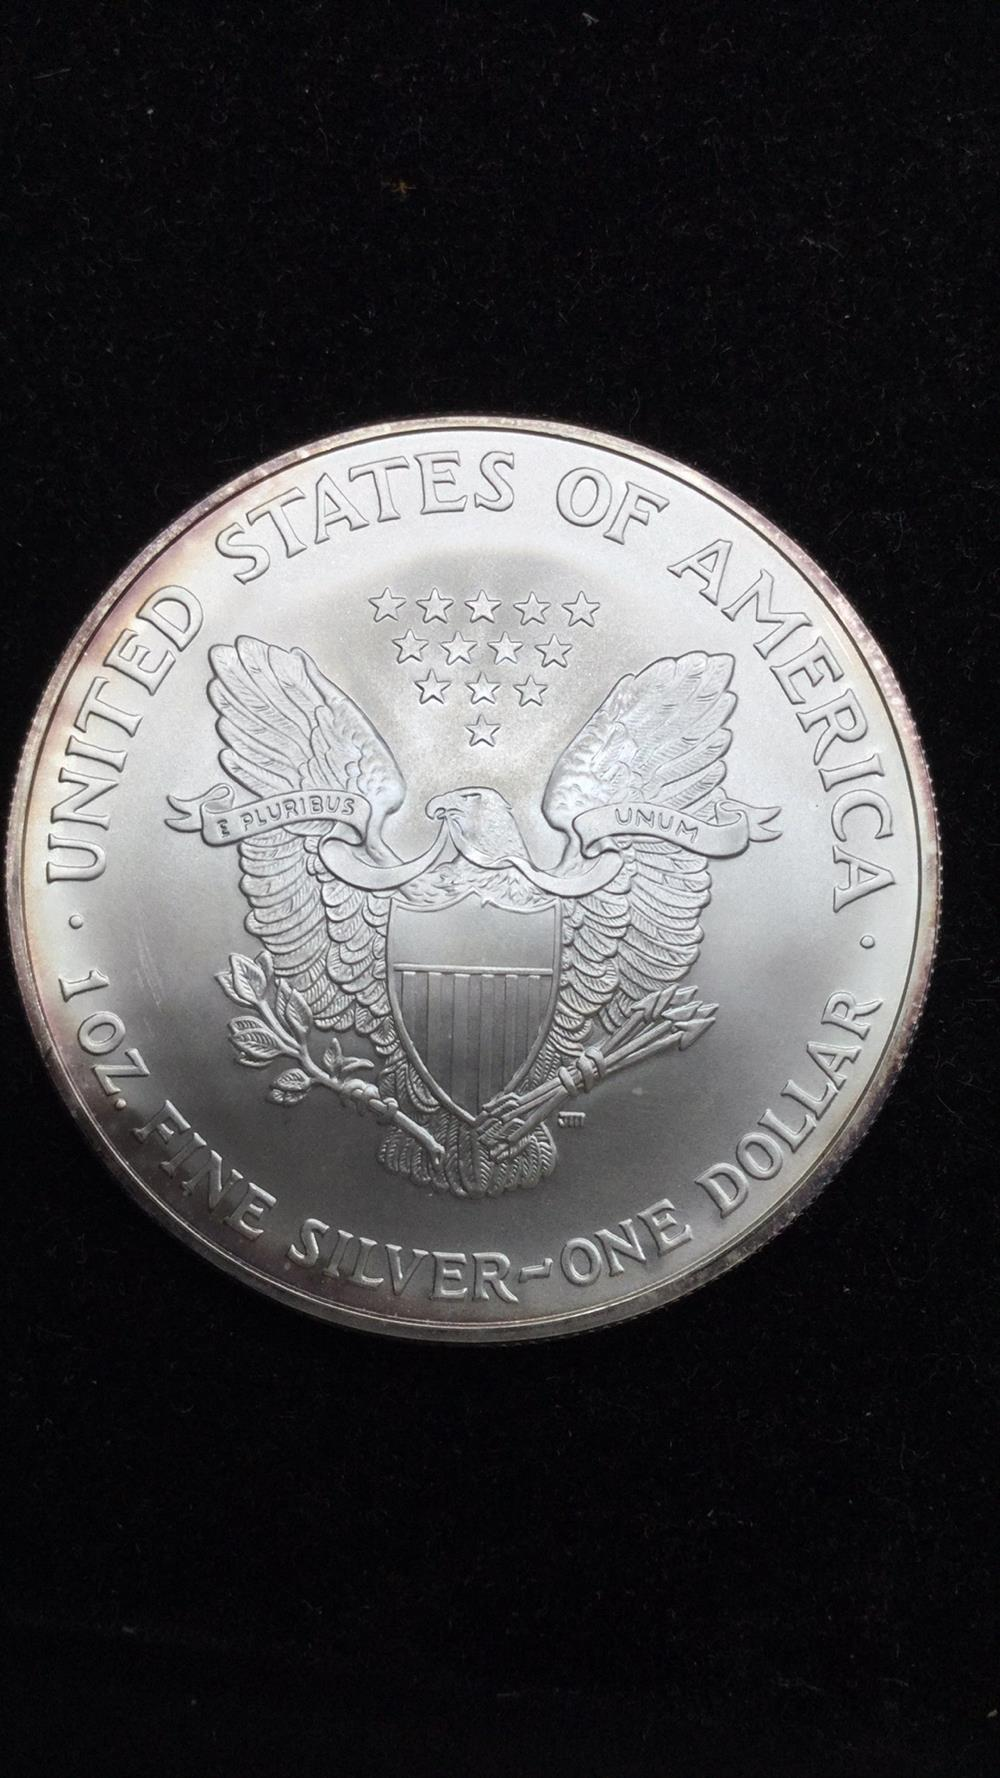 Lot 60: 2005 American eagle dollar coin